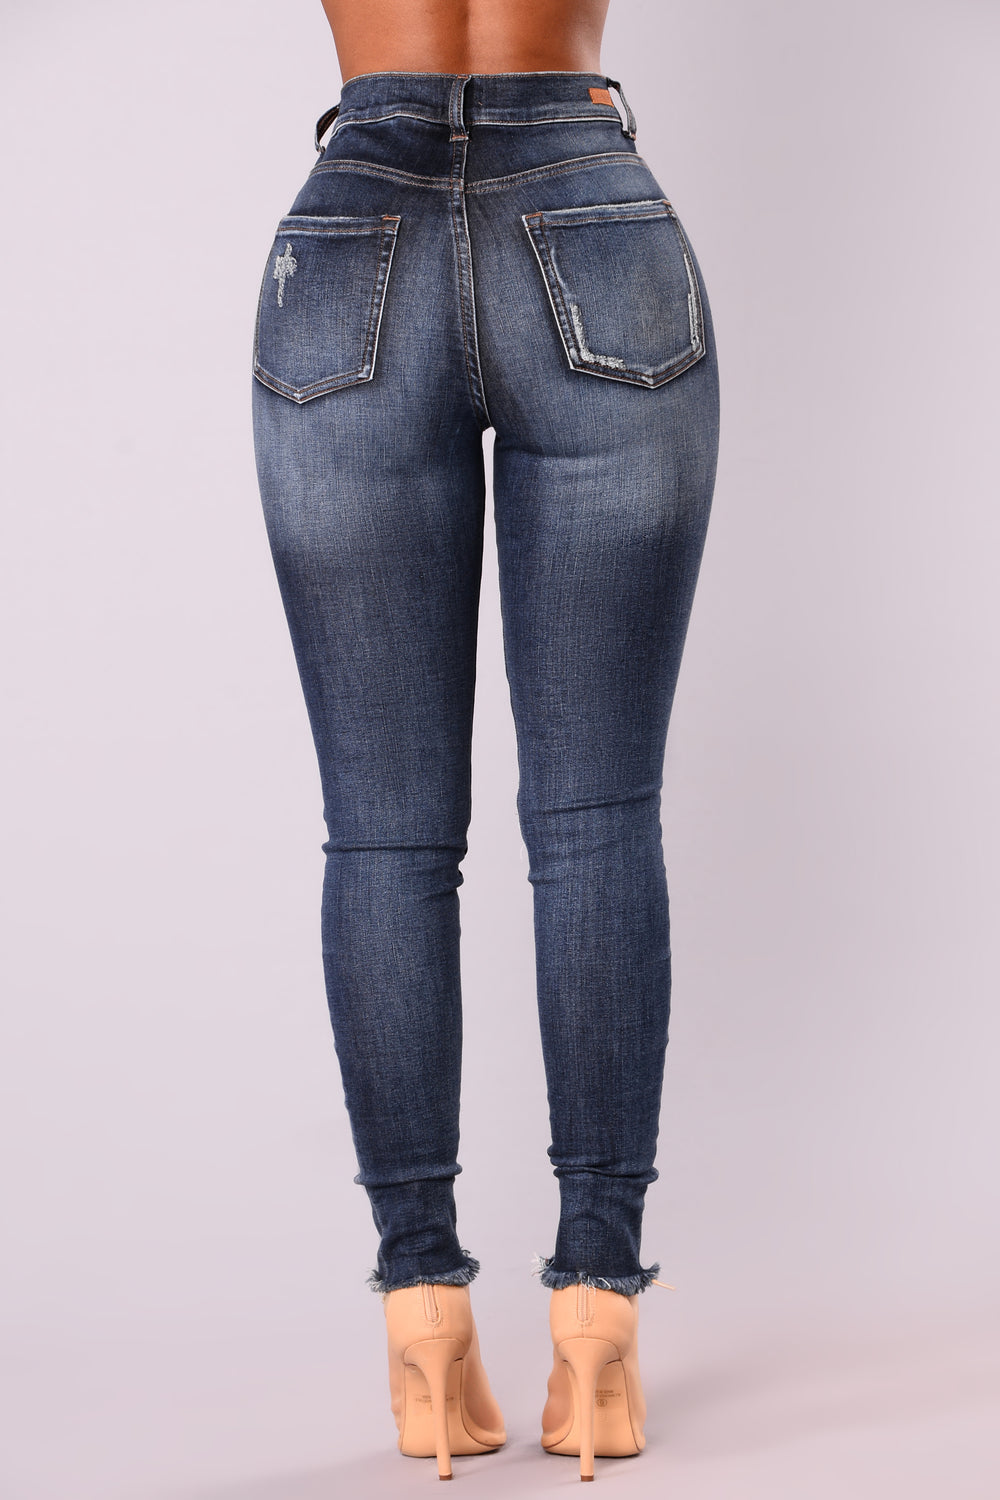 Smiley High Rise Distress Jeans - Dark Denim